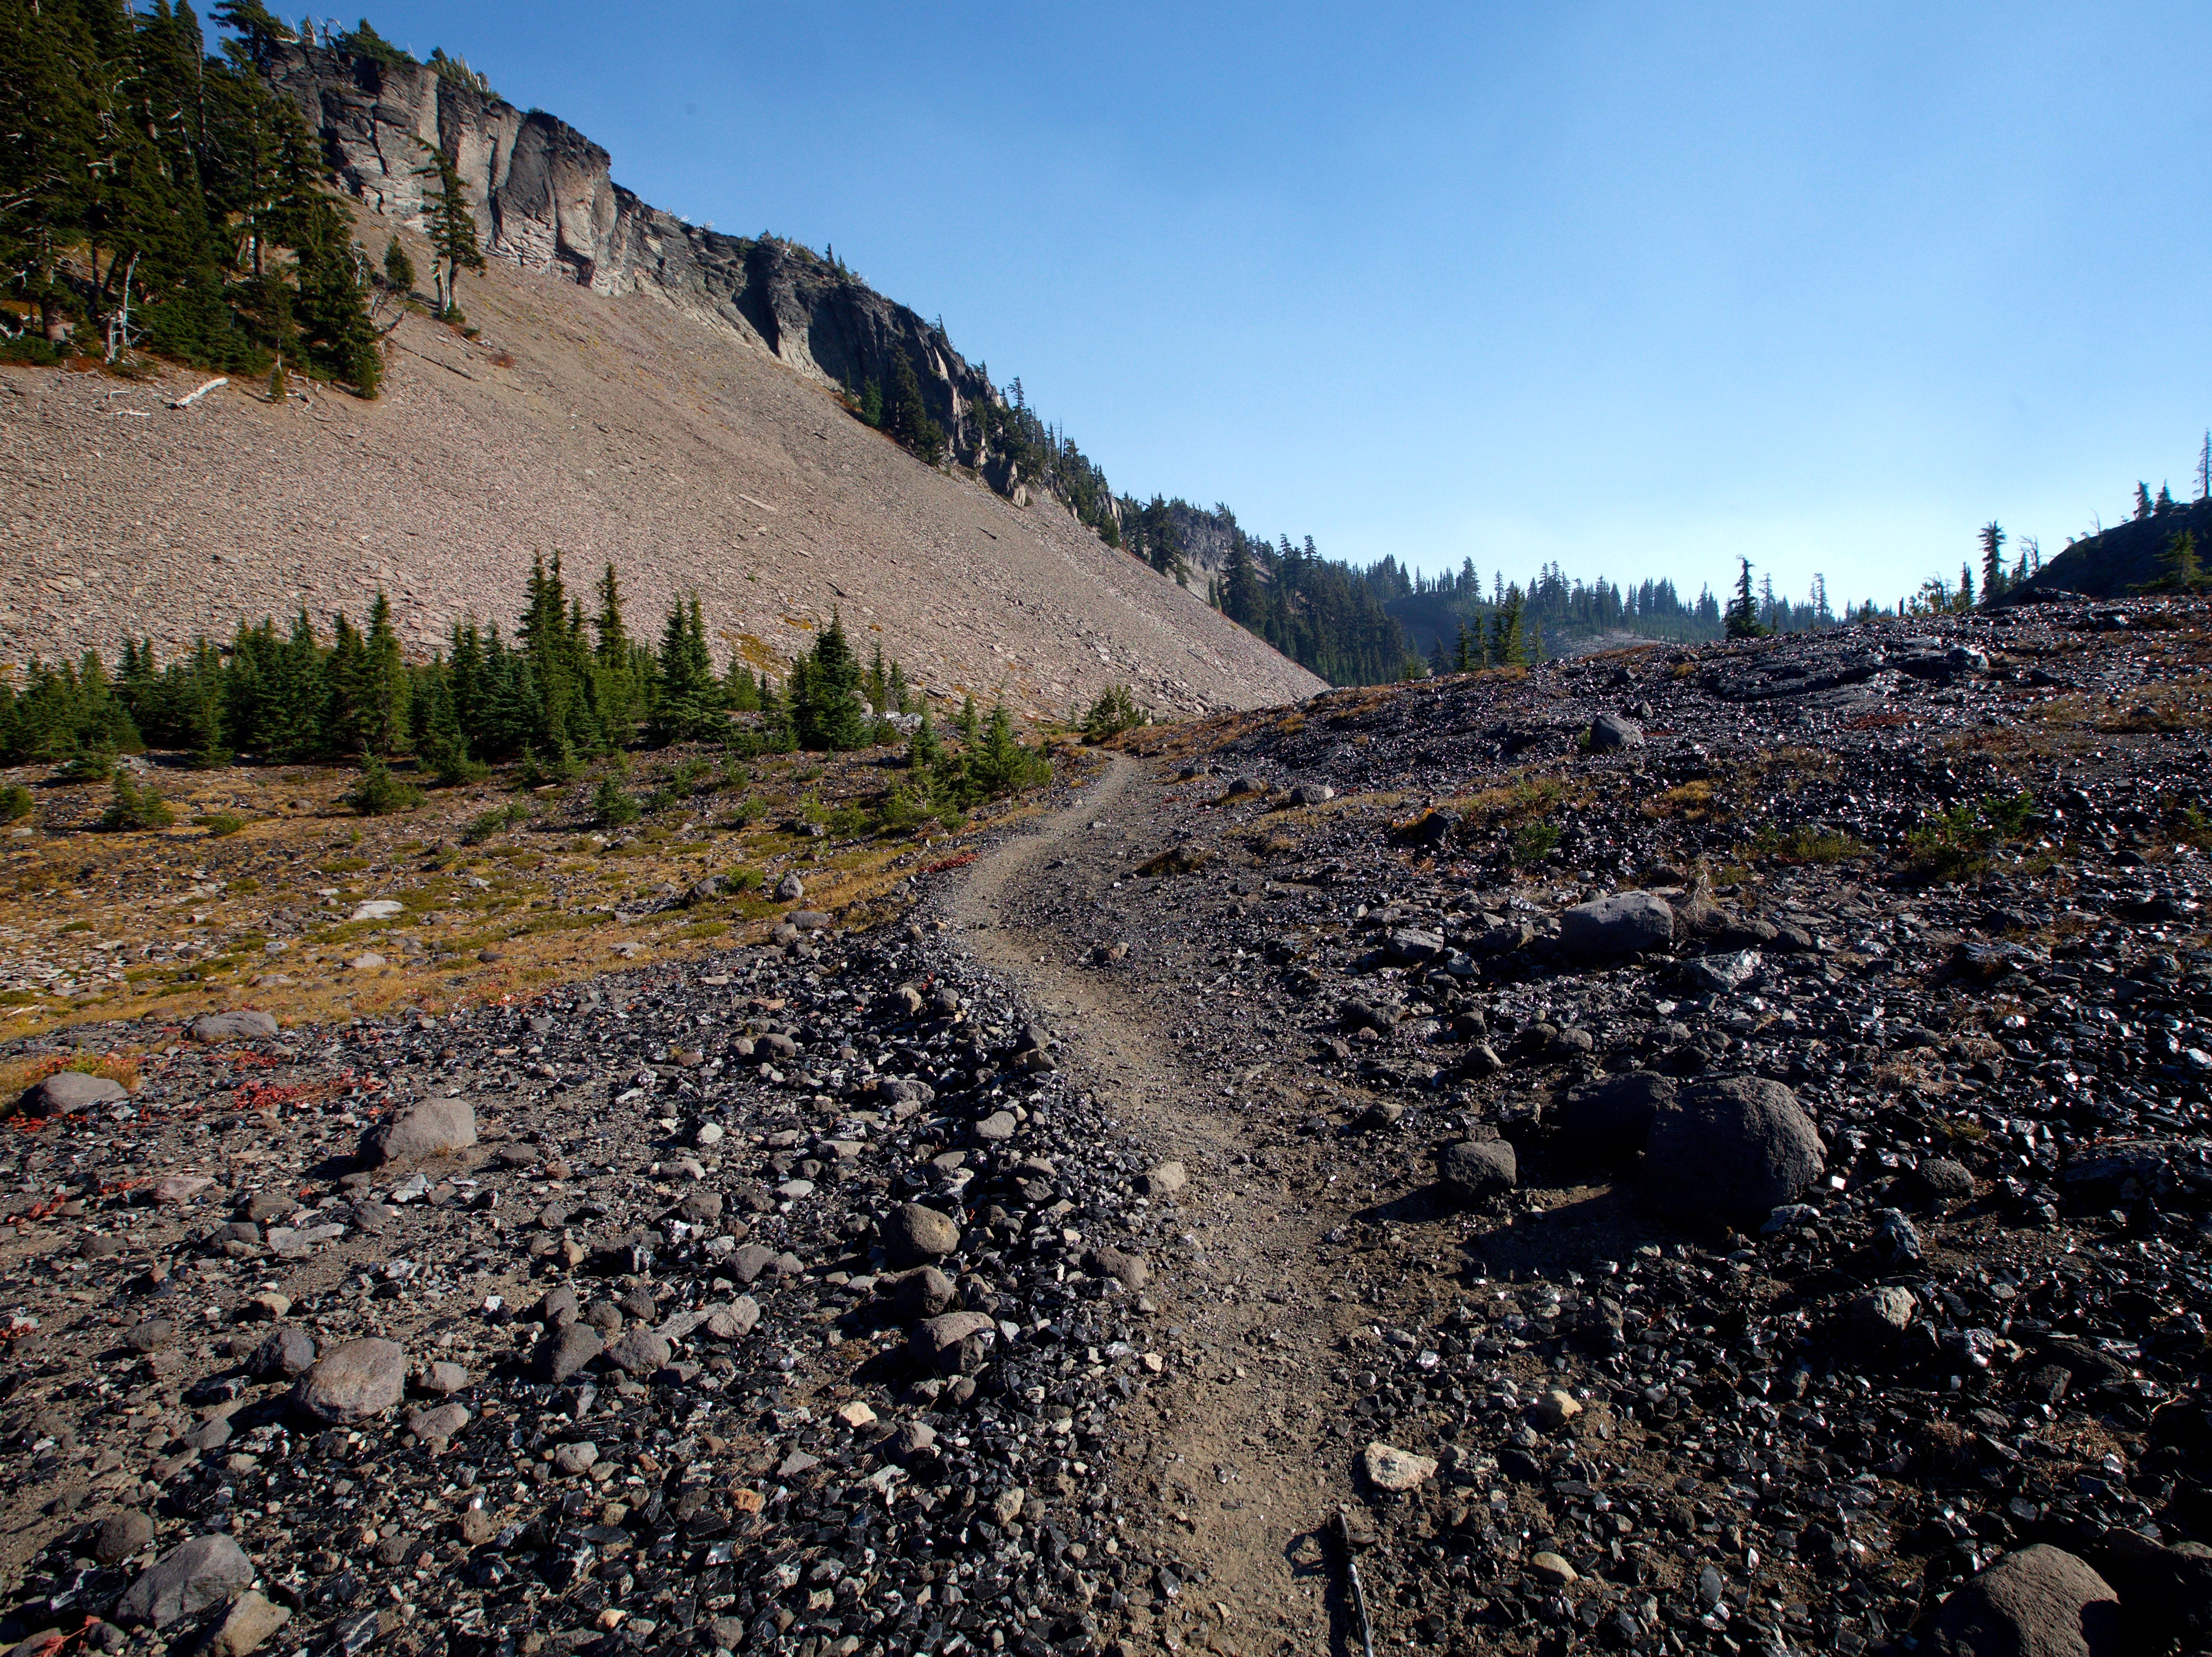 The reason Obsidian Trail has its name is the rich assortment of obsidian glass rock that is found throughout the hike.